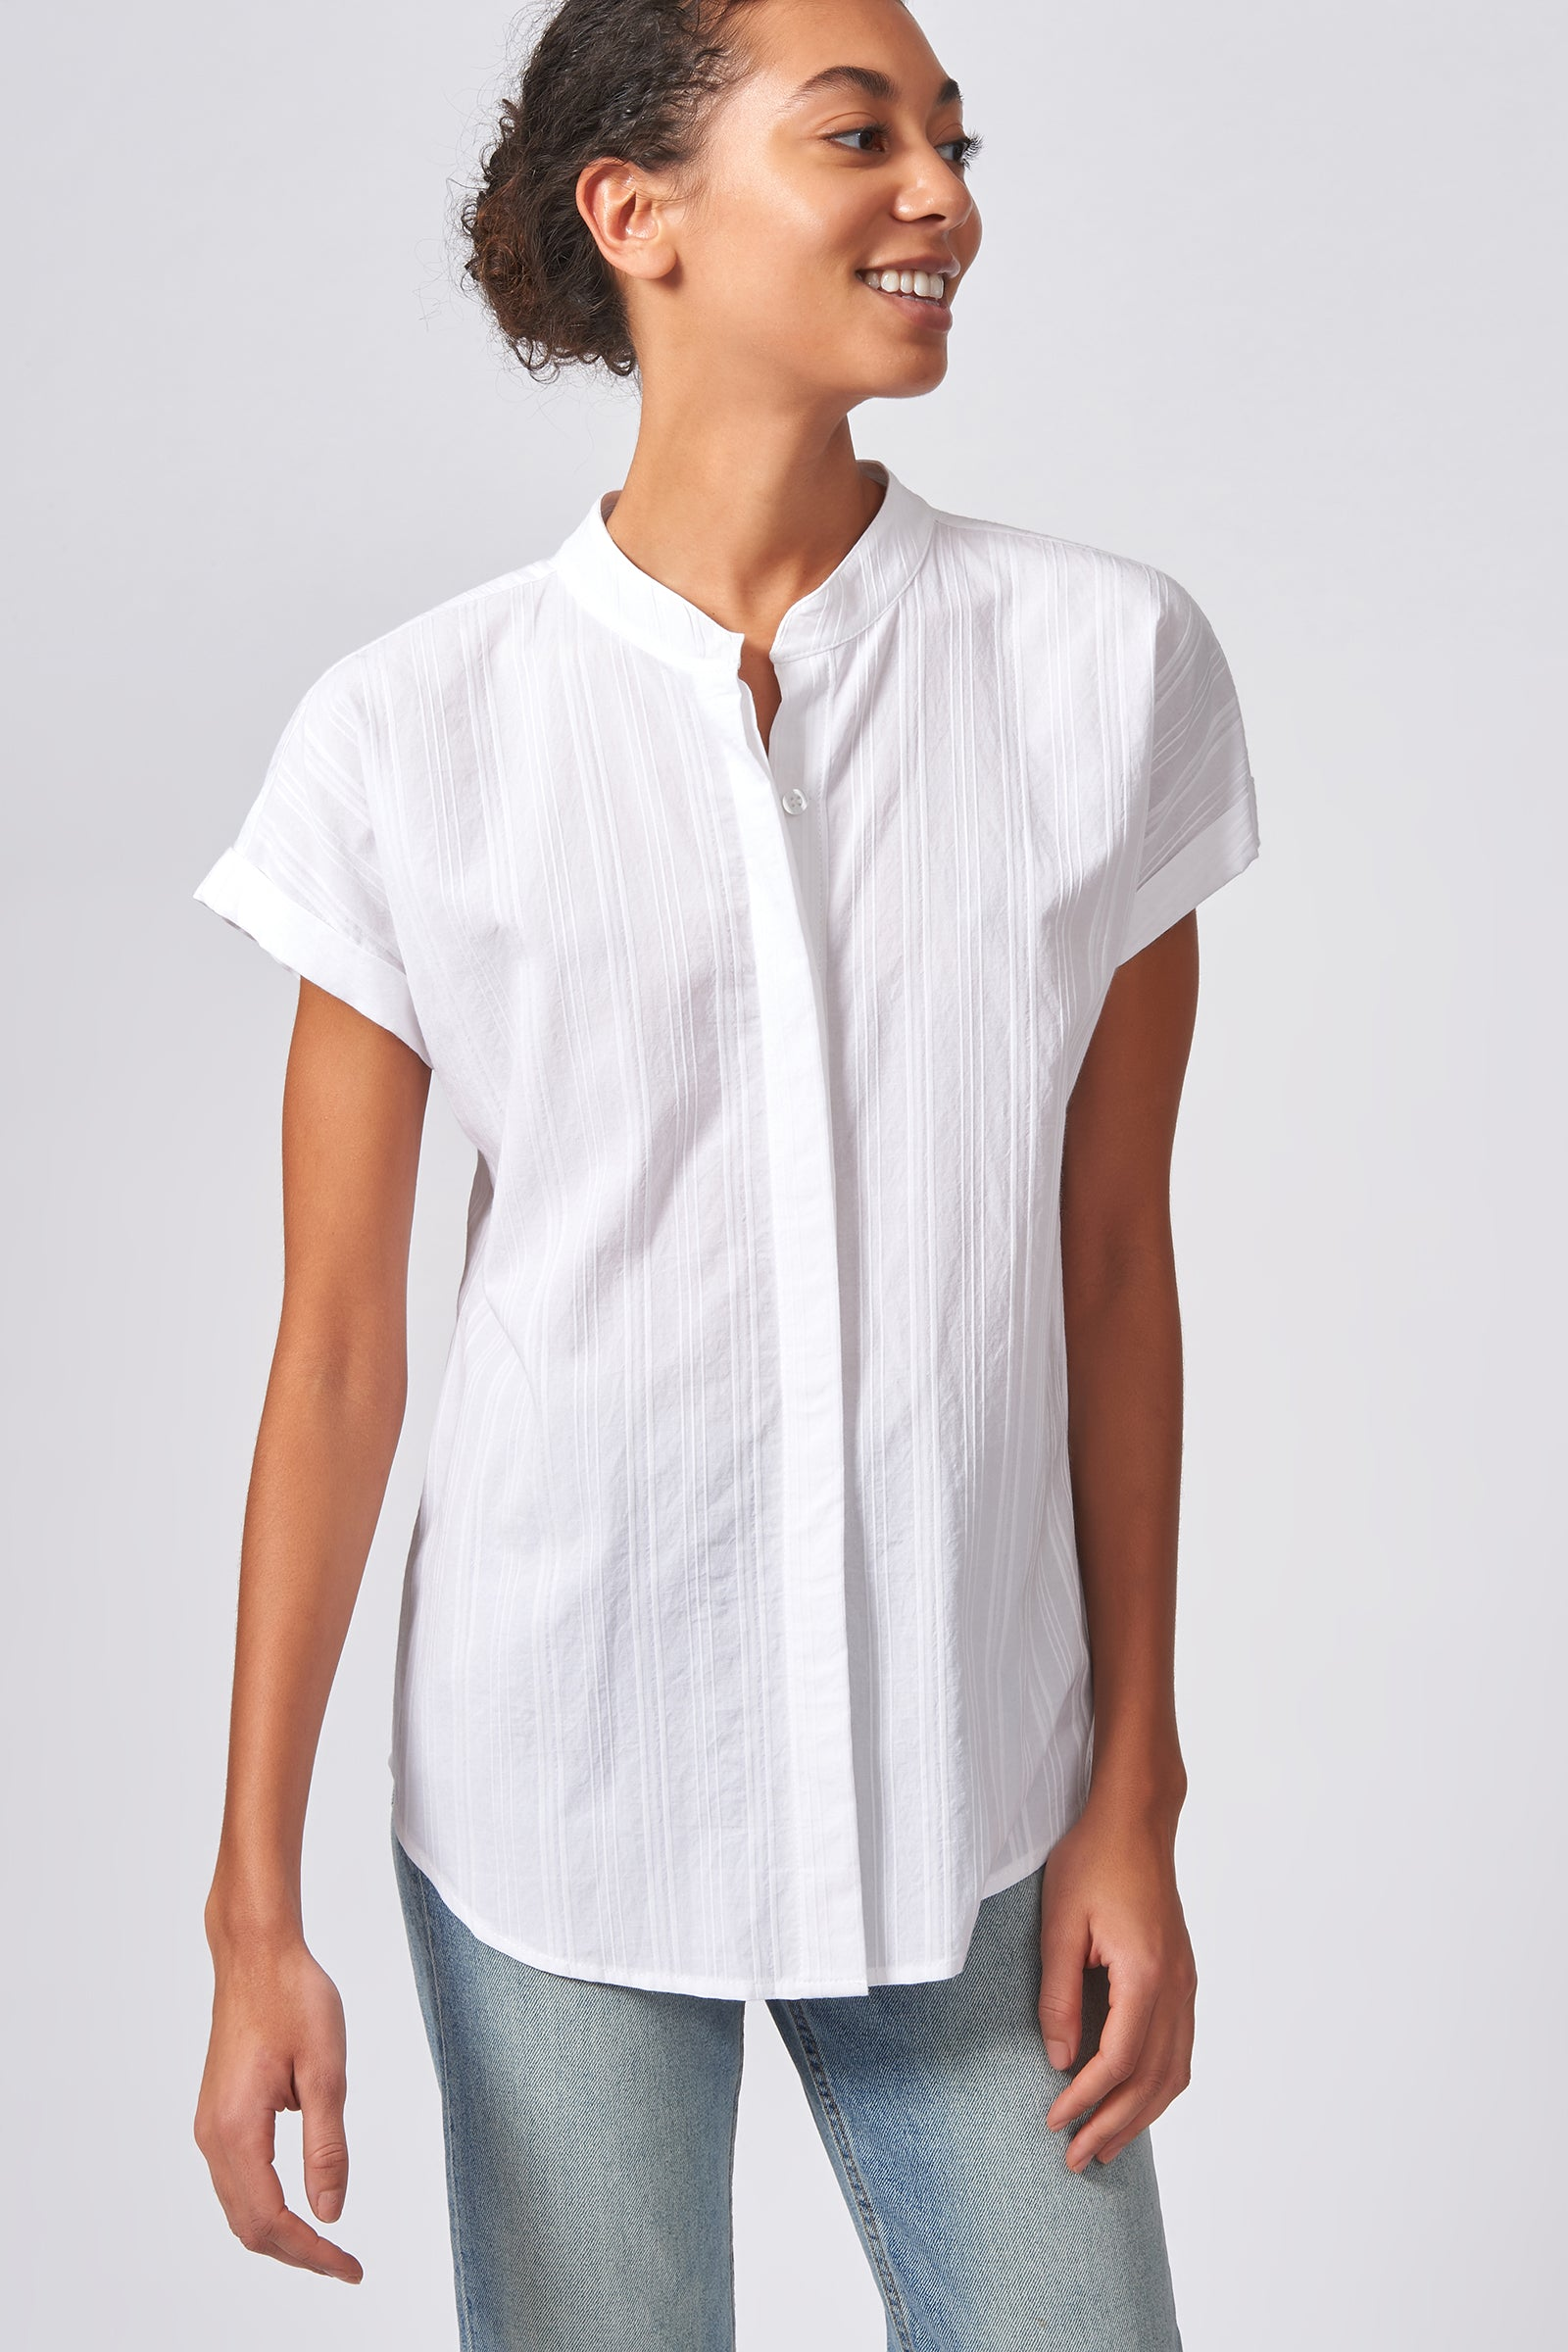 Kal Rieman Vent Back Collar Shirt in White Stripe on Model Front Side View